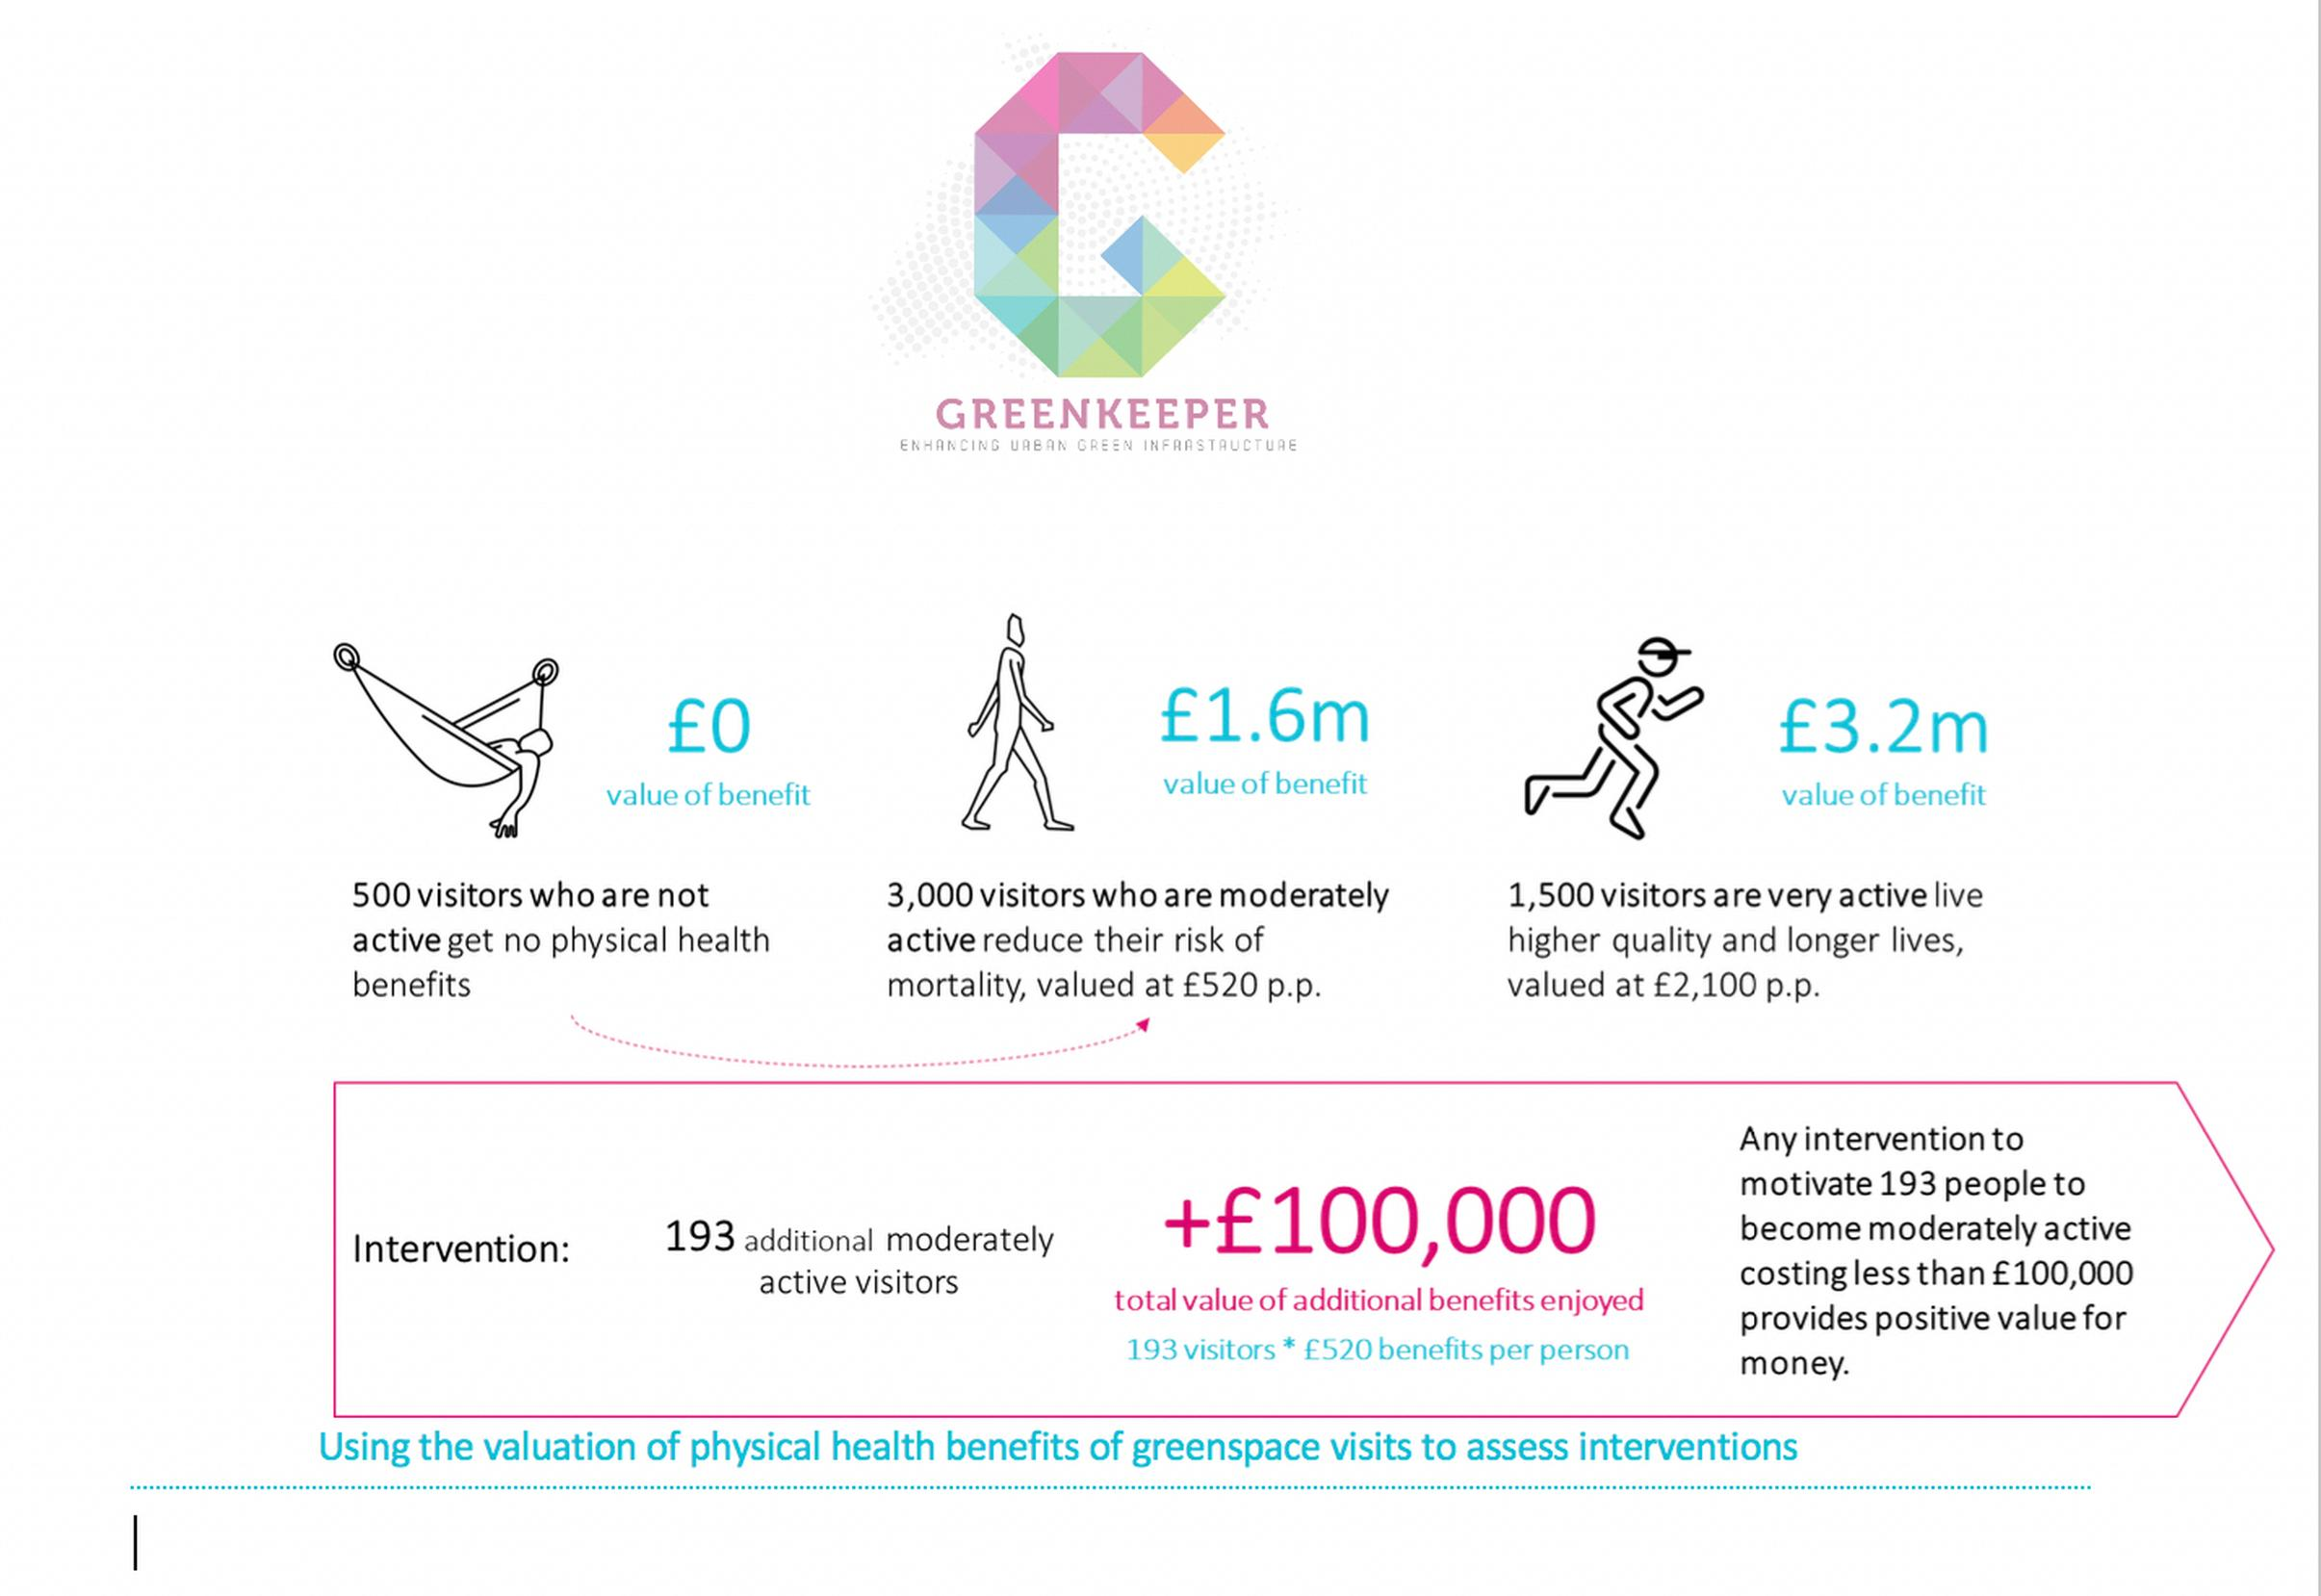 Using the valuation of physical health benefits of green space visits to assess interventions. Source: Vivid Economics